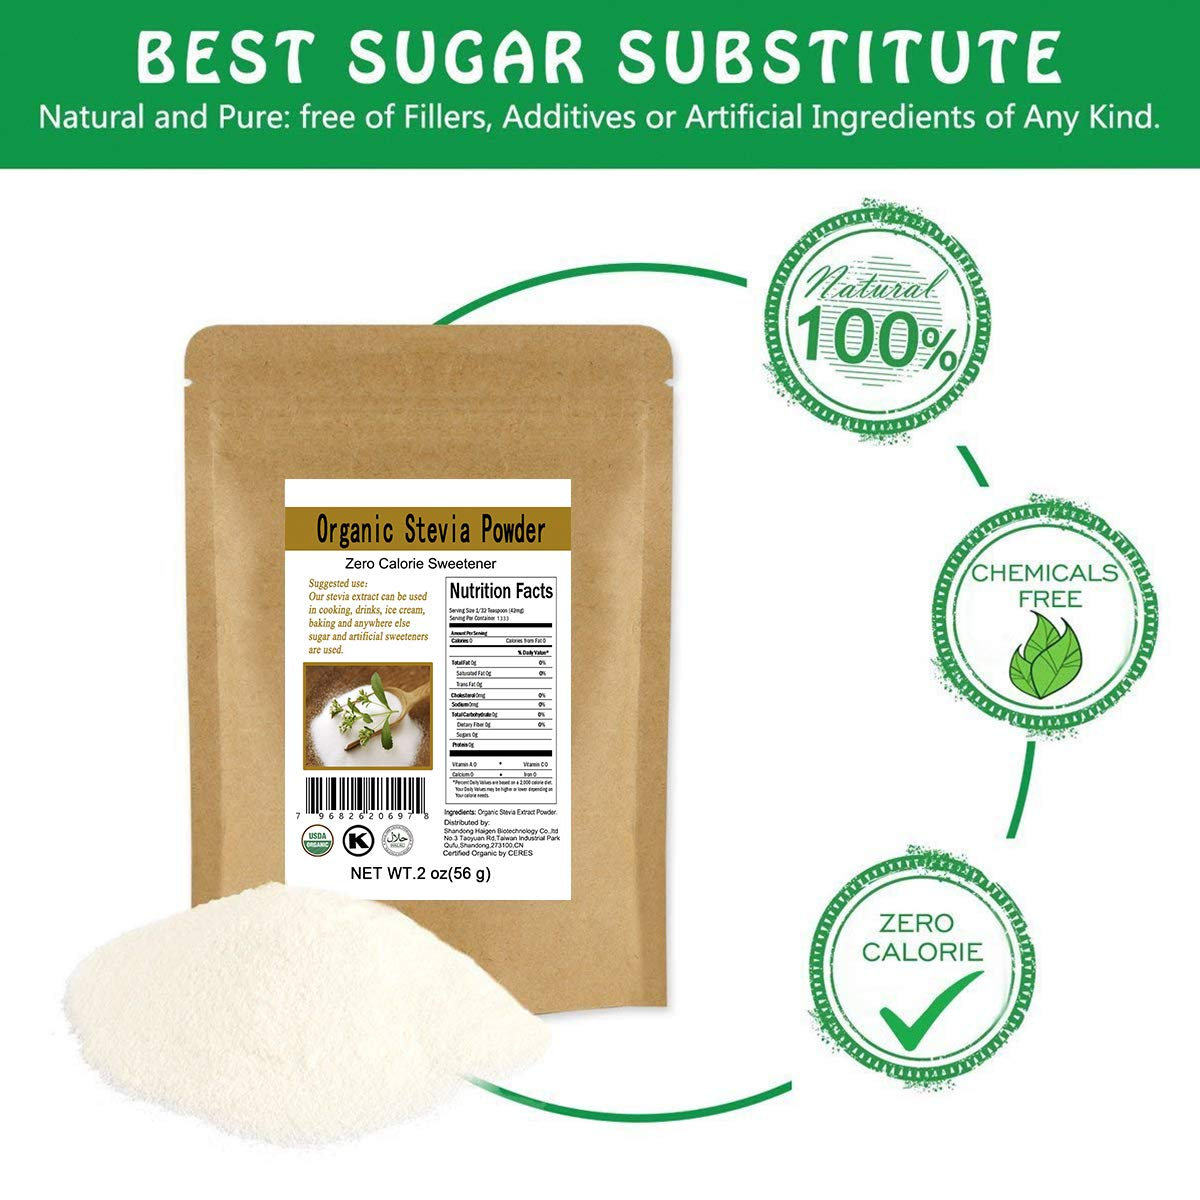 CCnature Organic Stevia Powder Extract Natural Sweetener Zero Calorie Sugar Substitute 2oz by CCnature (Image #2)